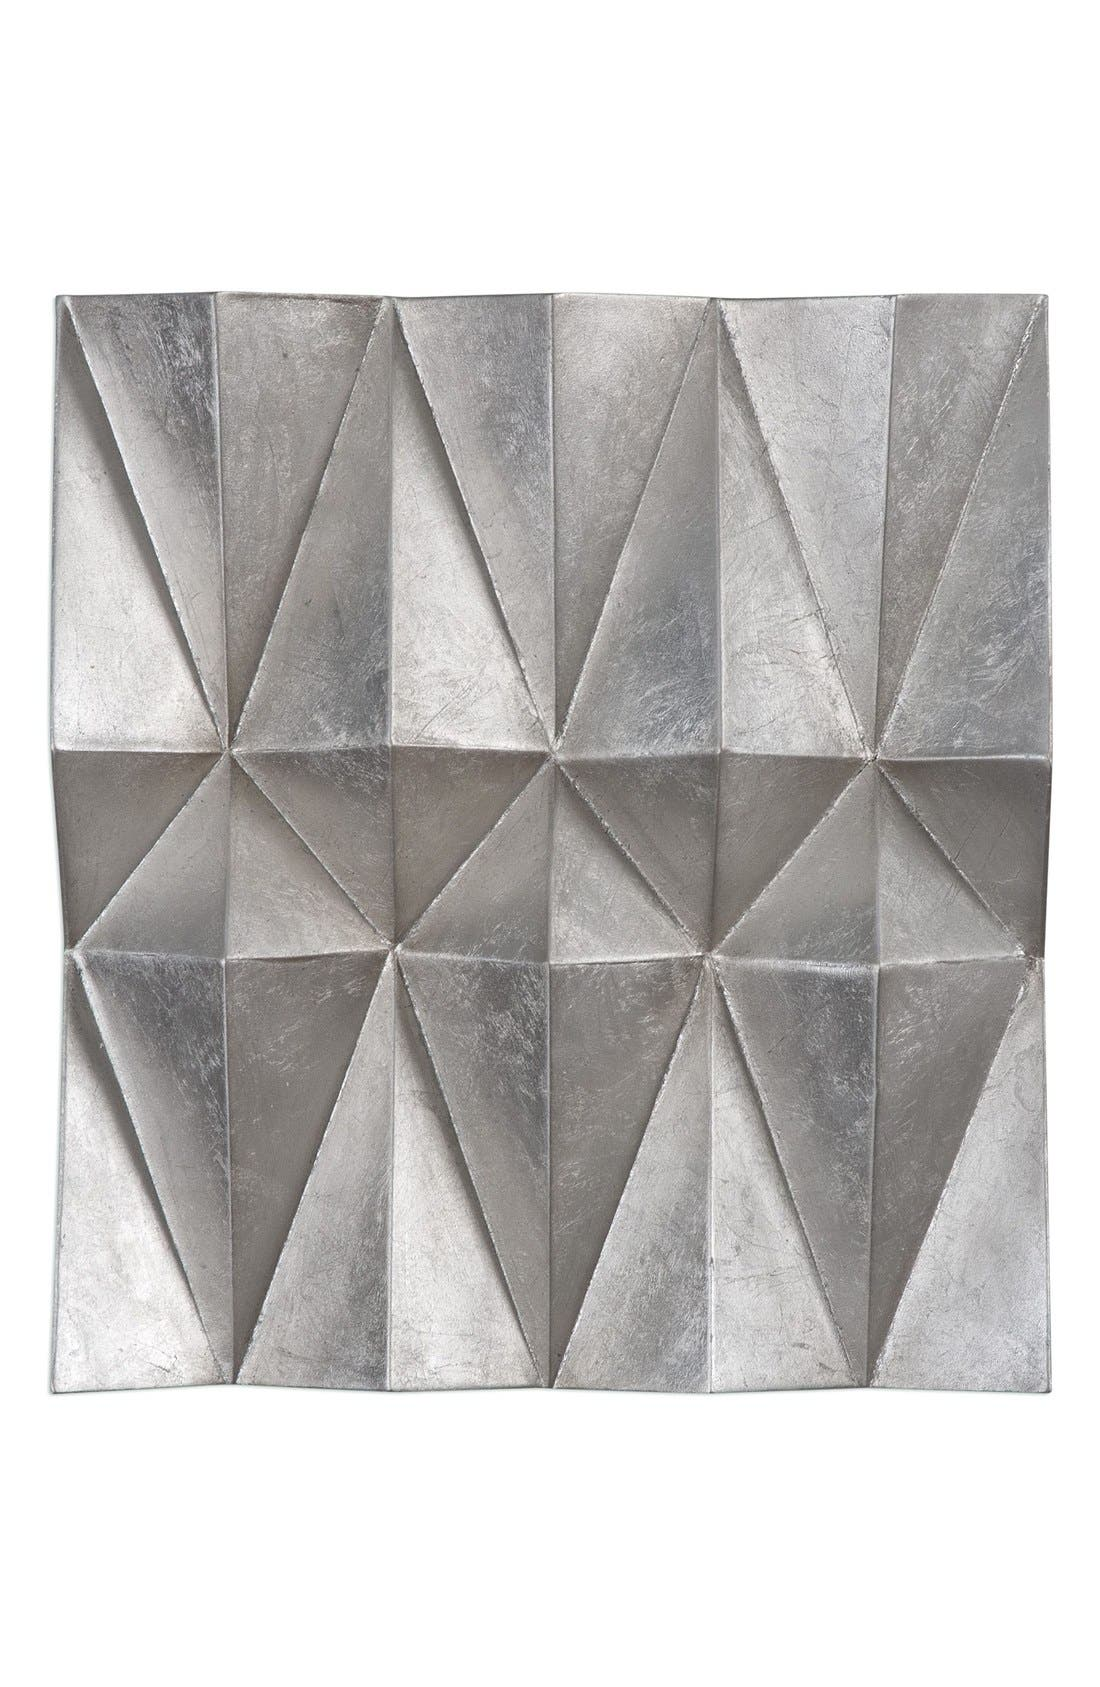 Alternate Image 1 Selected - Uttermost Faceted Wall Art (Set of 3)